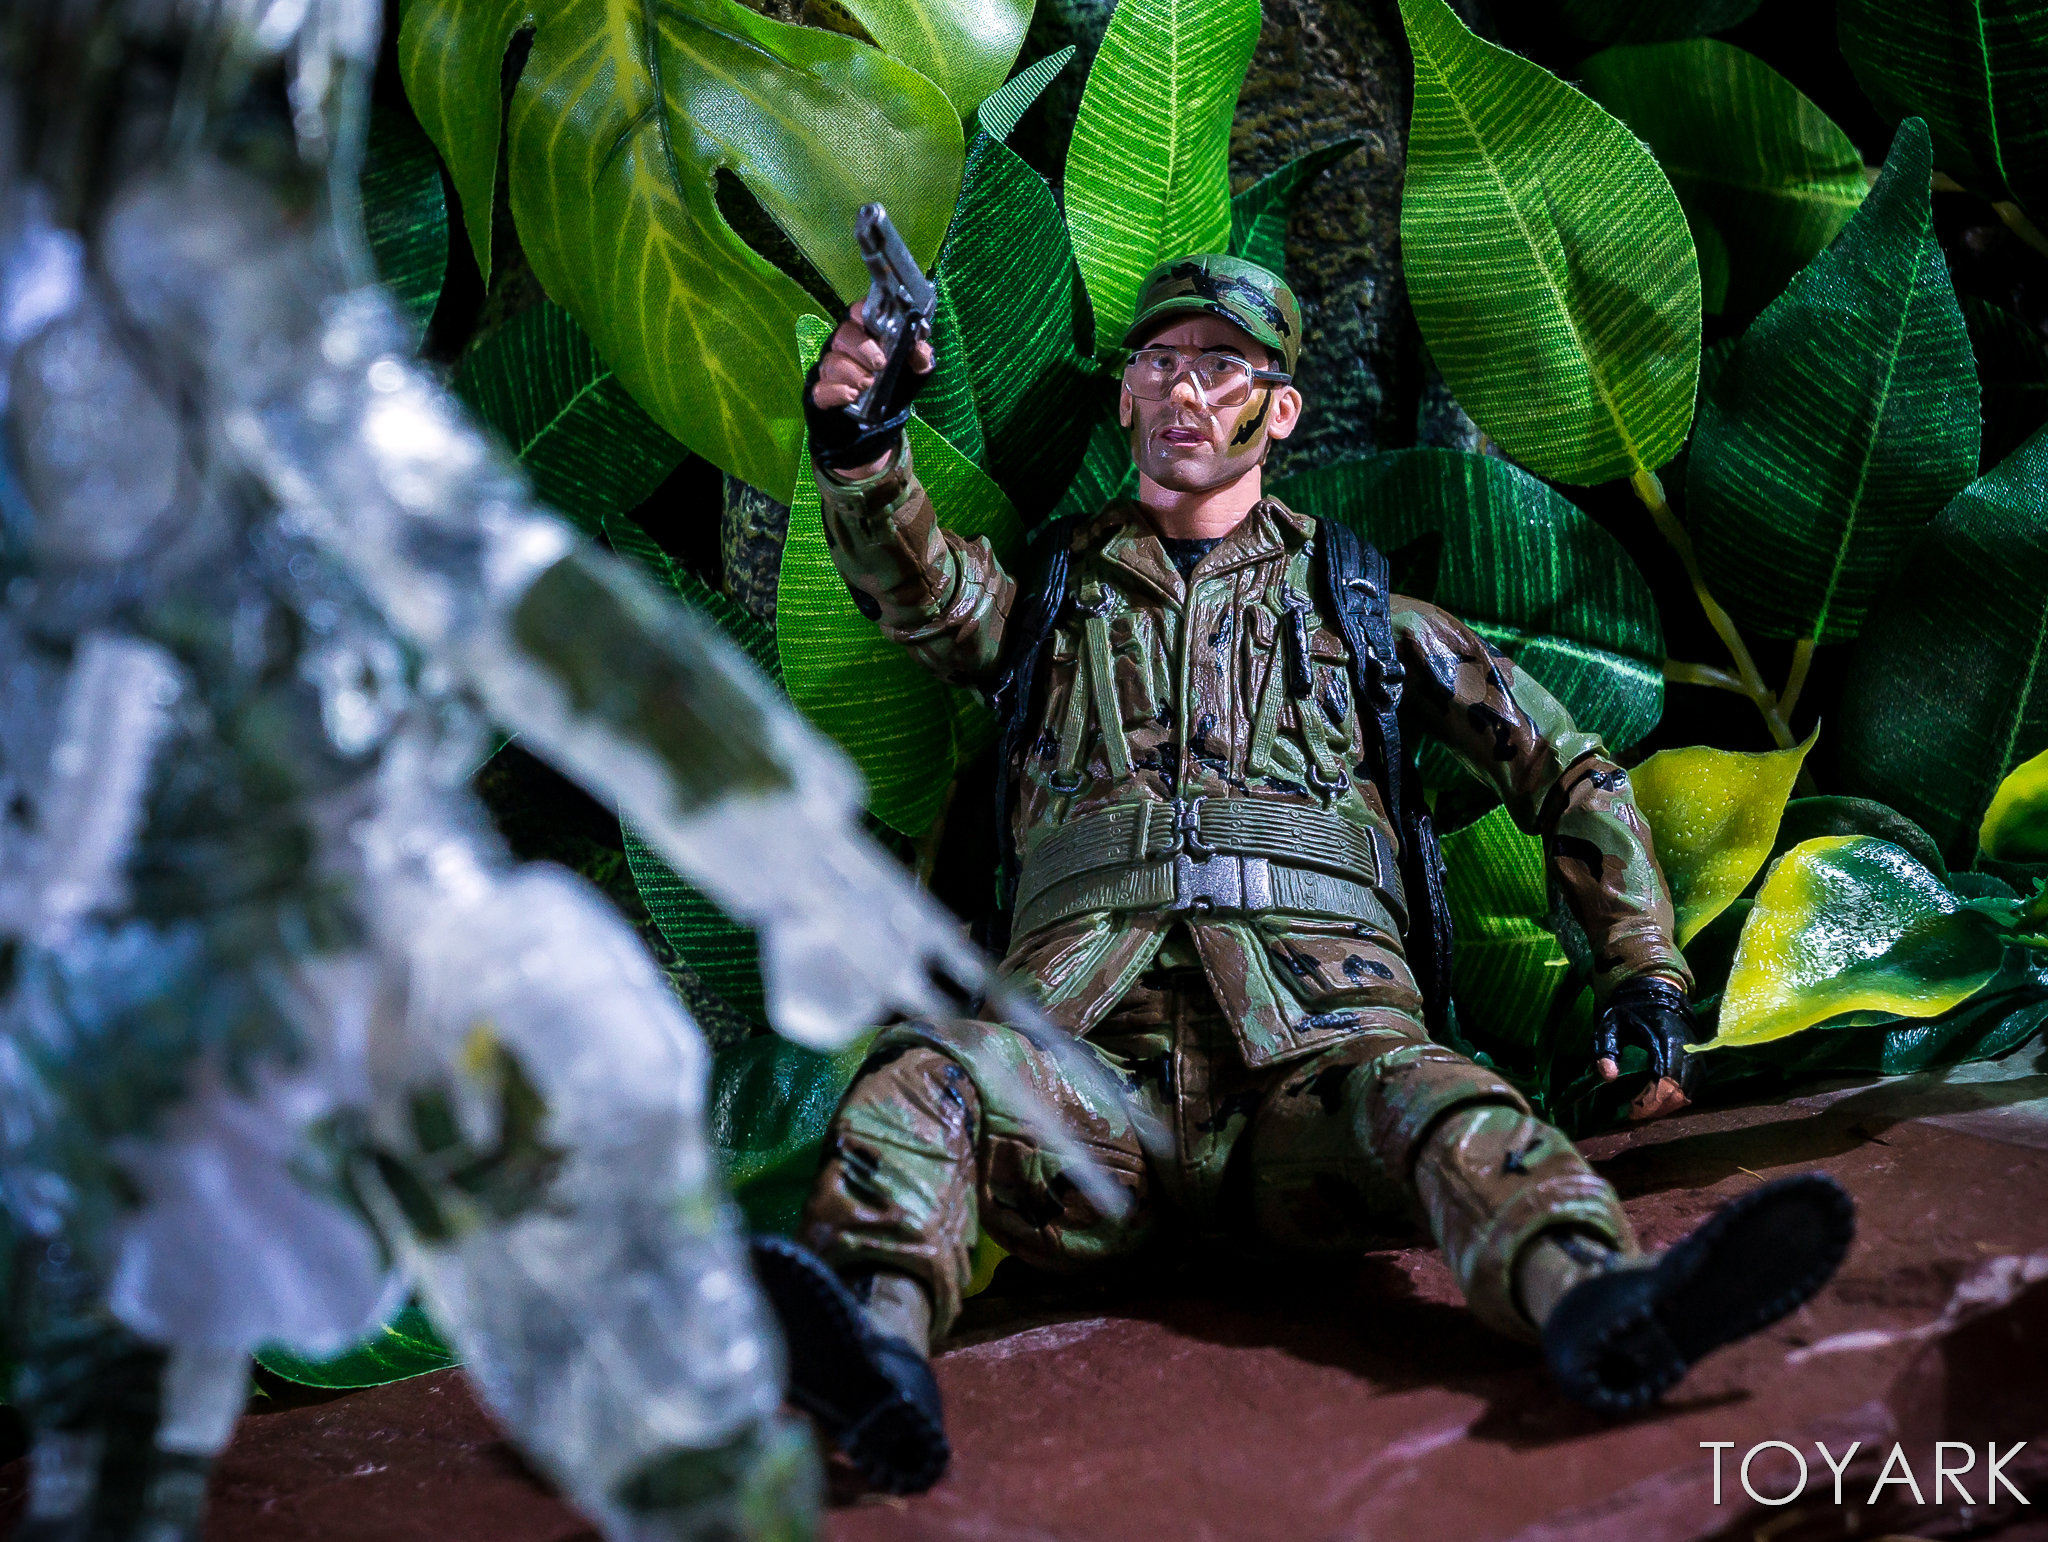 https://news.toyark.com/wp-content/uploads/sites/4/2018/07/NECA-SDCC2018-Predator-Hawkins-038.jpg